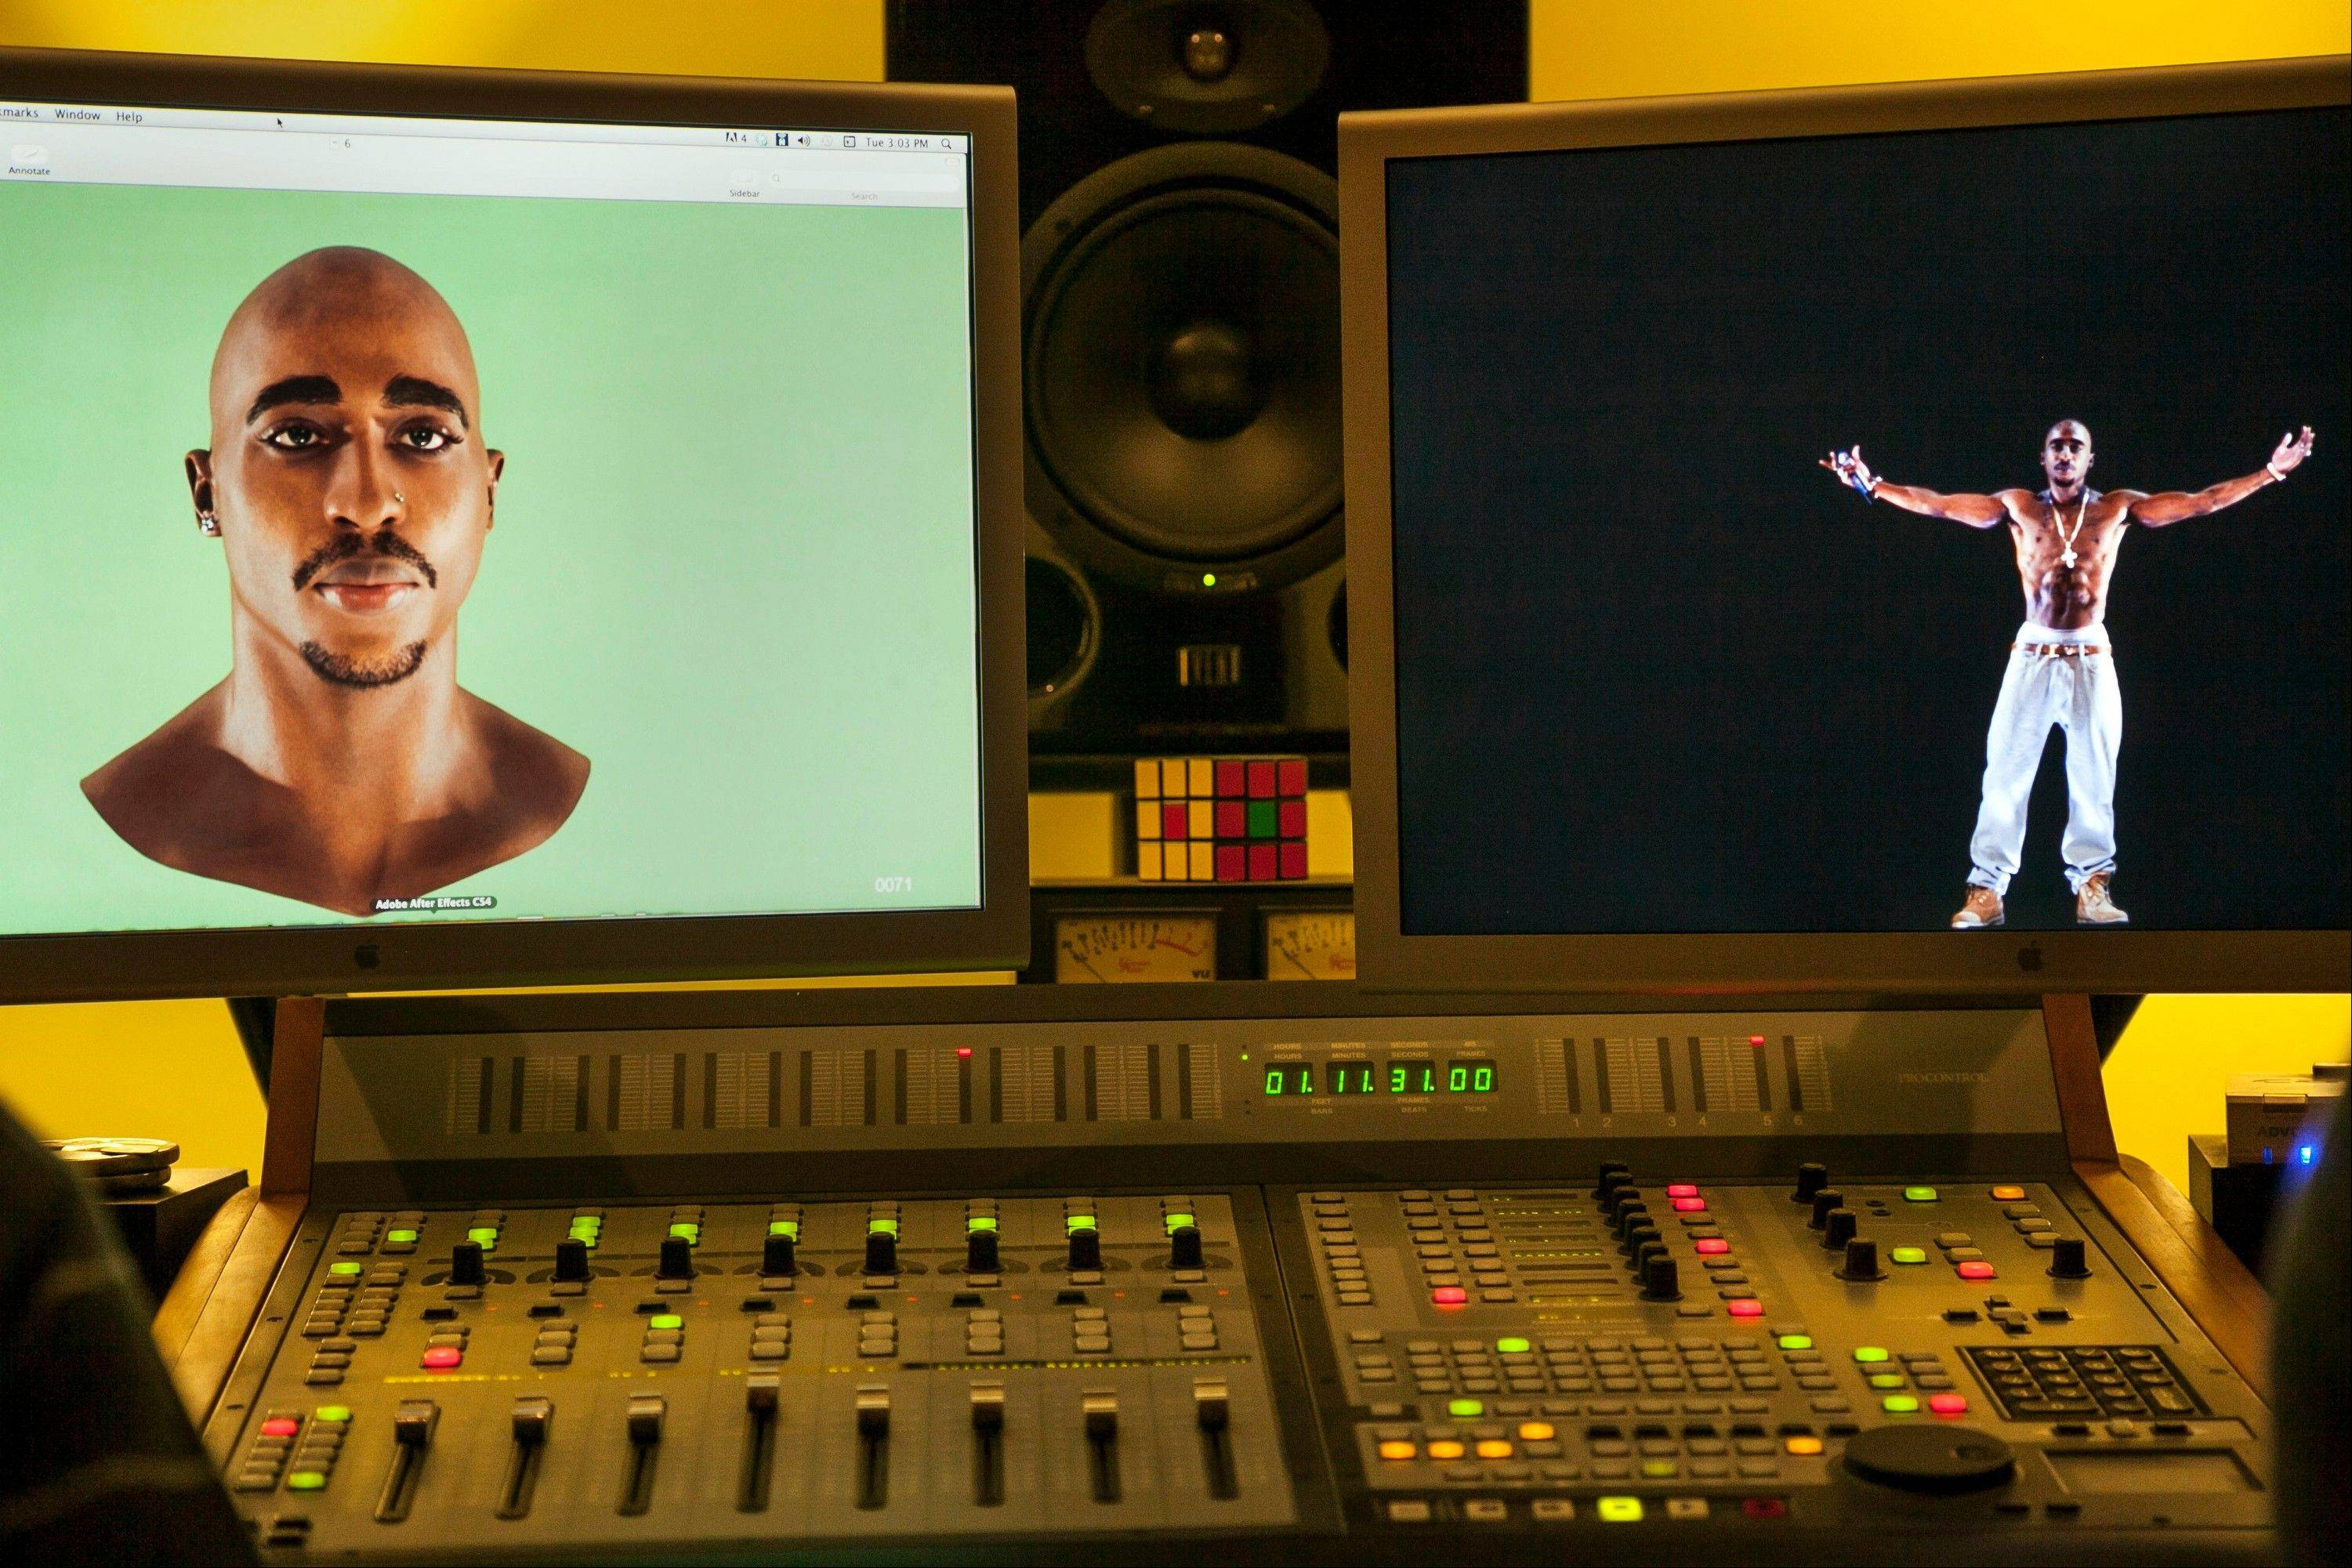 Video images of the Tupac Shakur hologram are displayed on a computer monitor at the Subtractive Studio in Santa Monica, Calif. When Tupac Shakur rose from the stage in the California desert earlier this year, it was not only a jaw-dropping resurrection, but also the beginning of a new form of live entertainment.